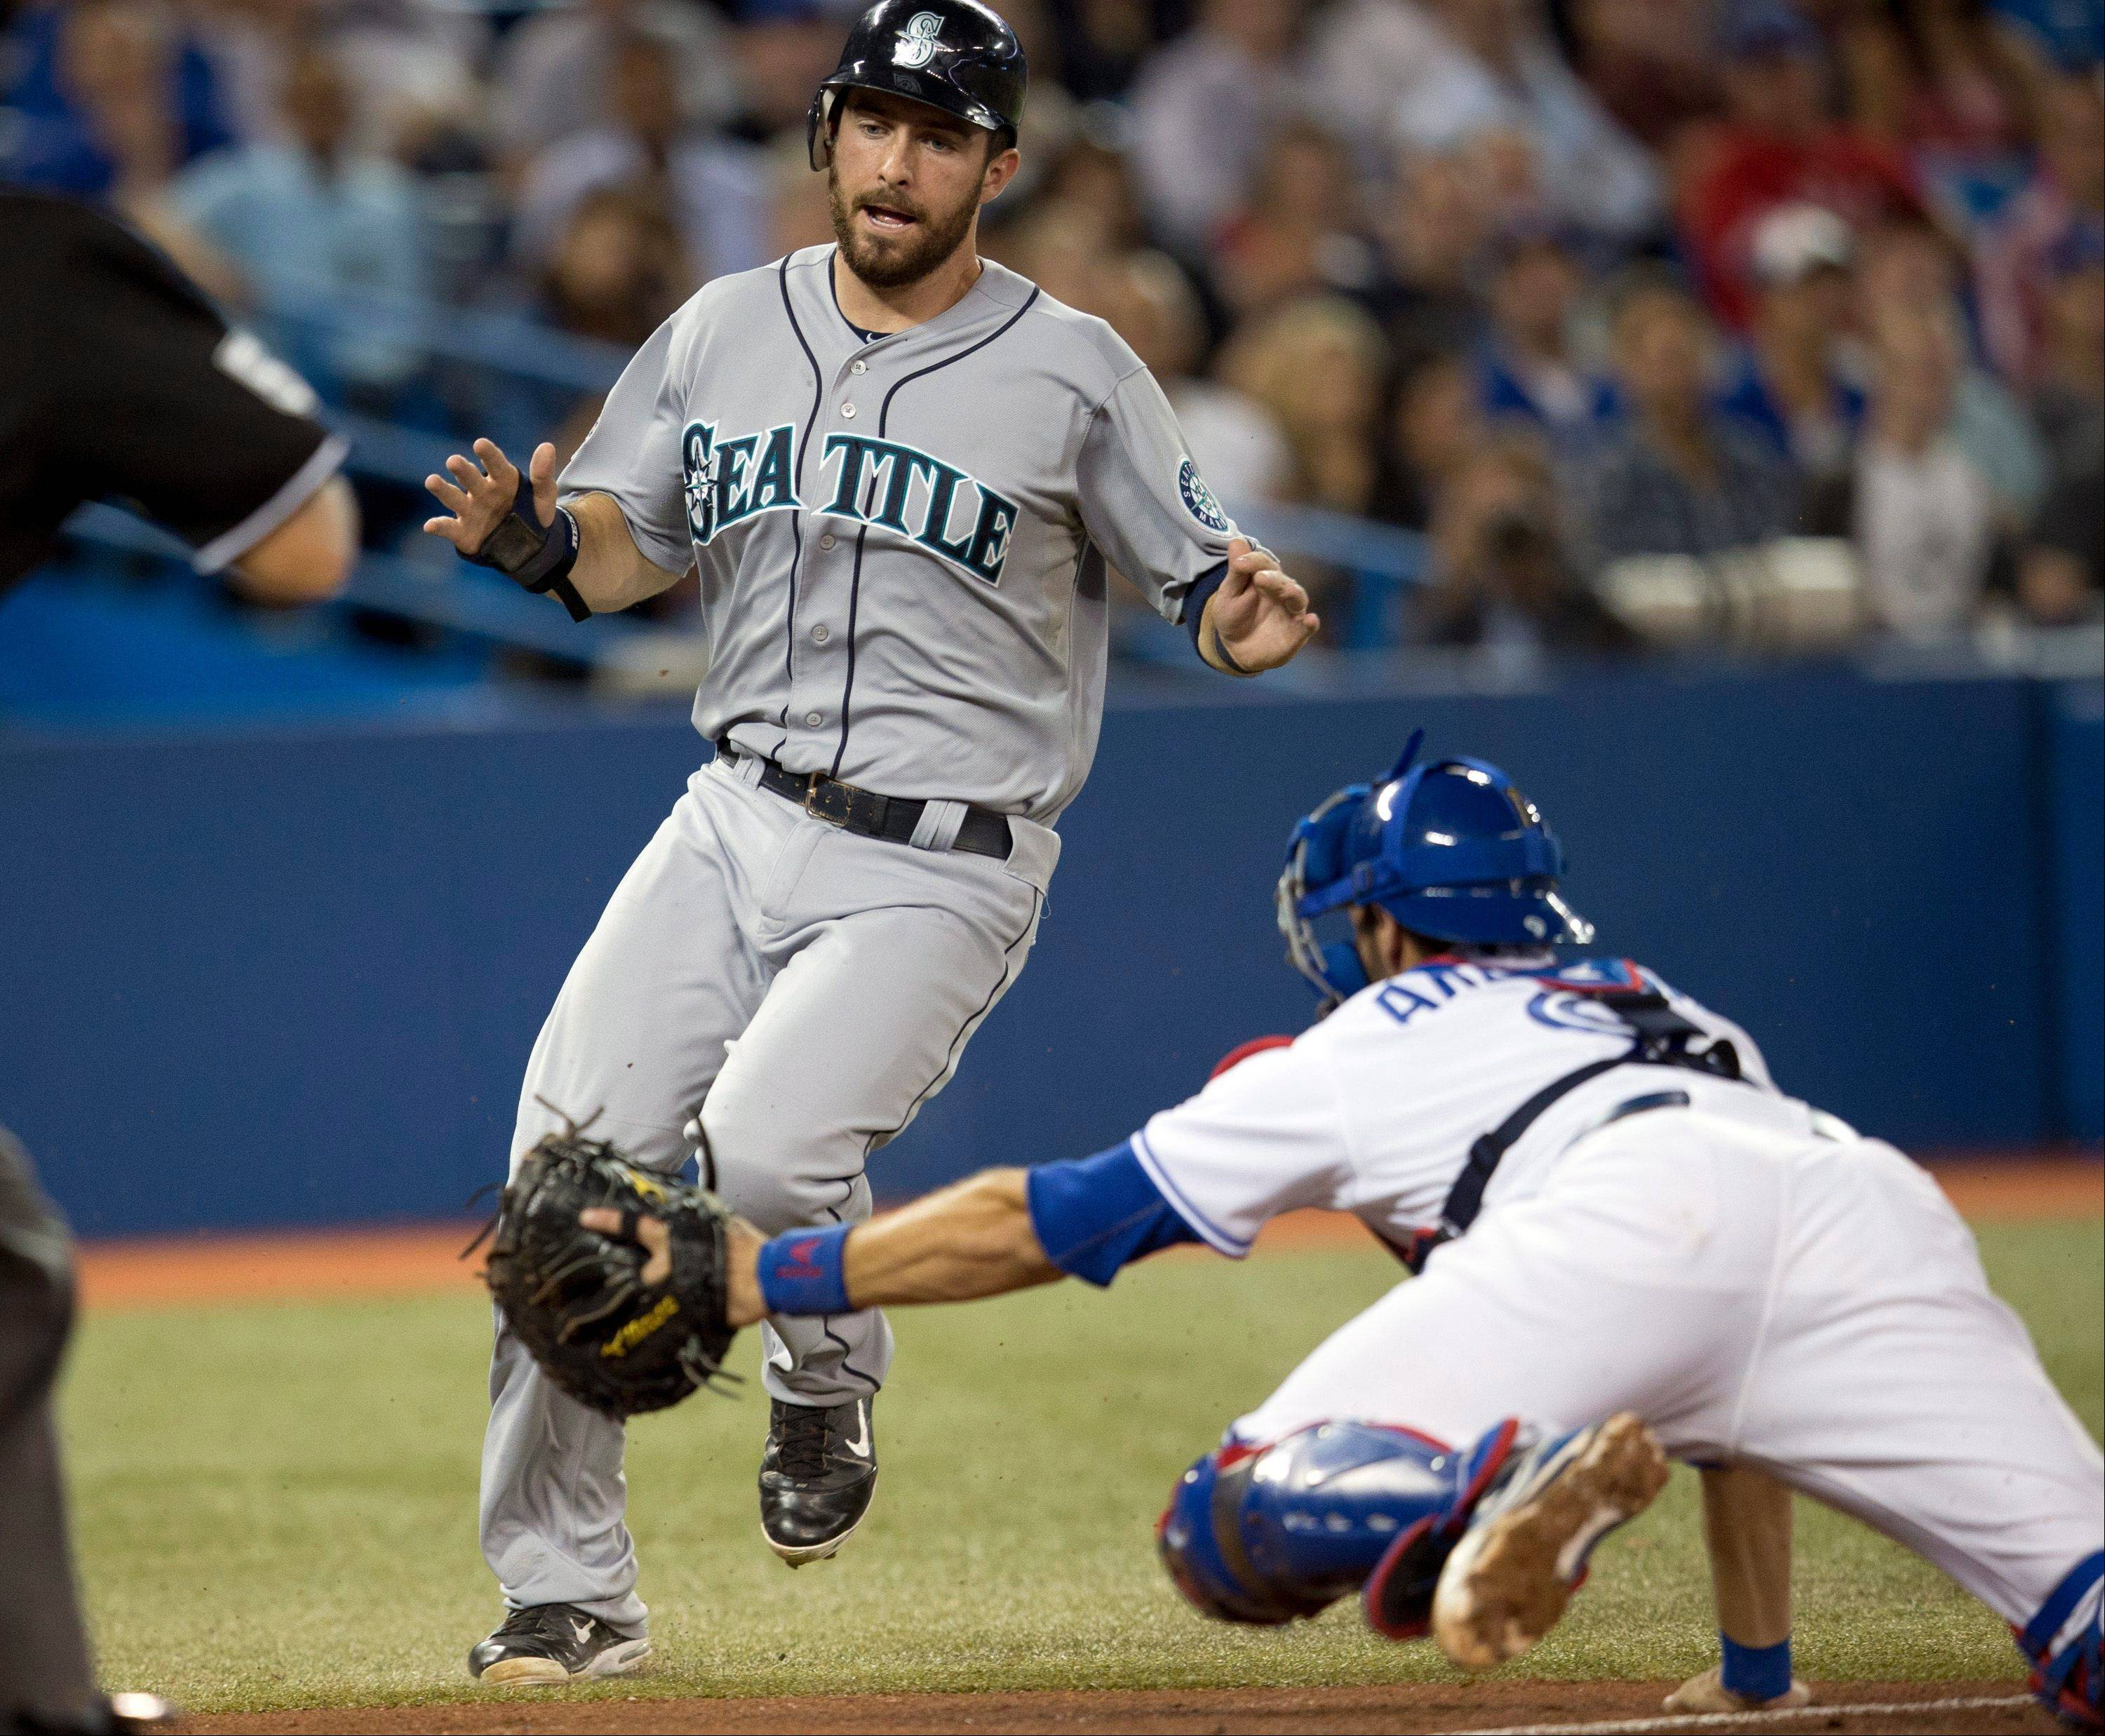 Seattle�s Dustin Ackley dodges the tag of Blue Jays catcher J.P. Arencibia to score during the fourth inning Wednesday in Toronto.